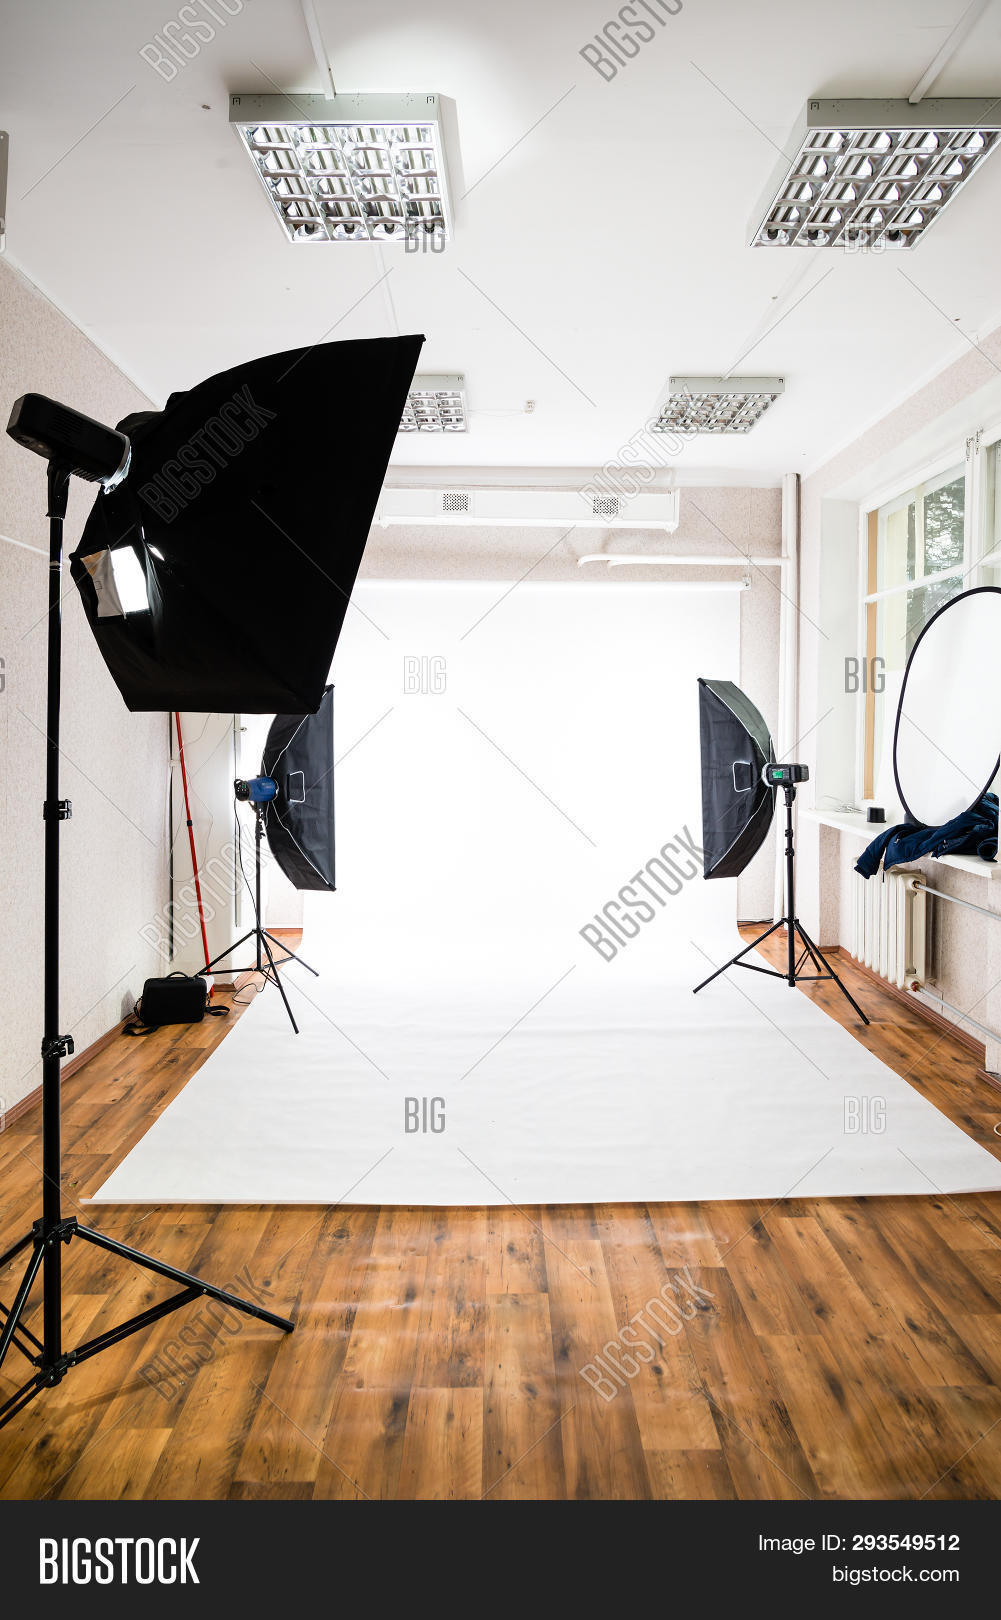 Empty Photo Studio Image Photo Free Trial Bigstock